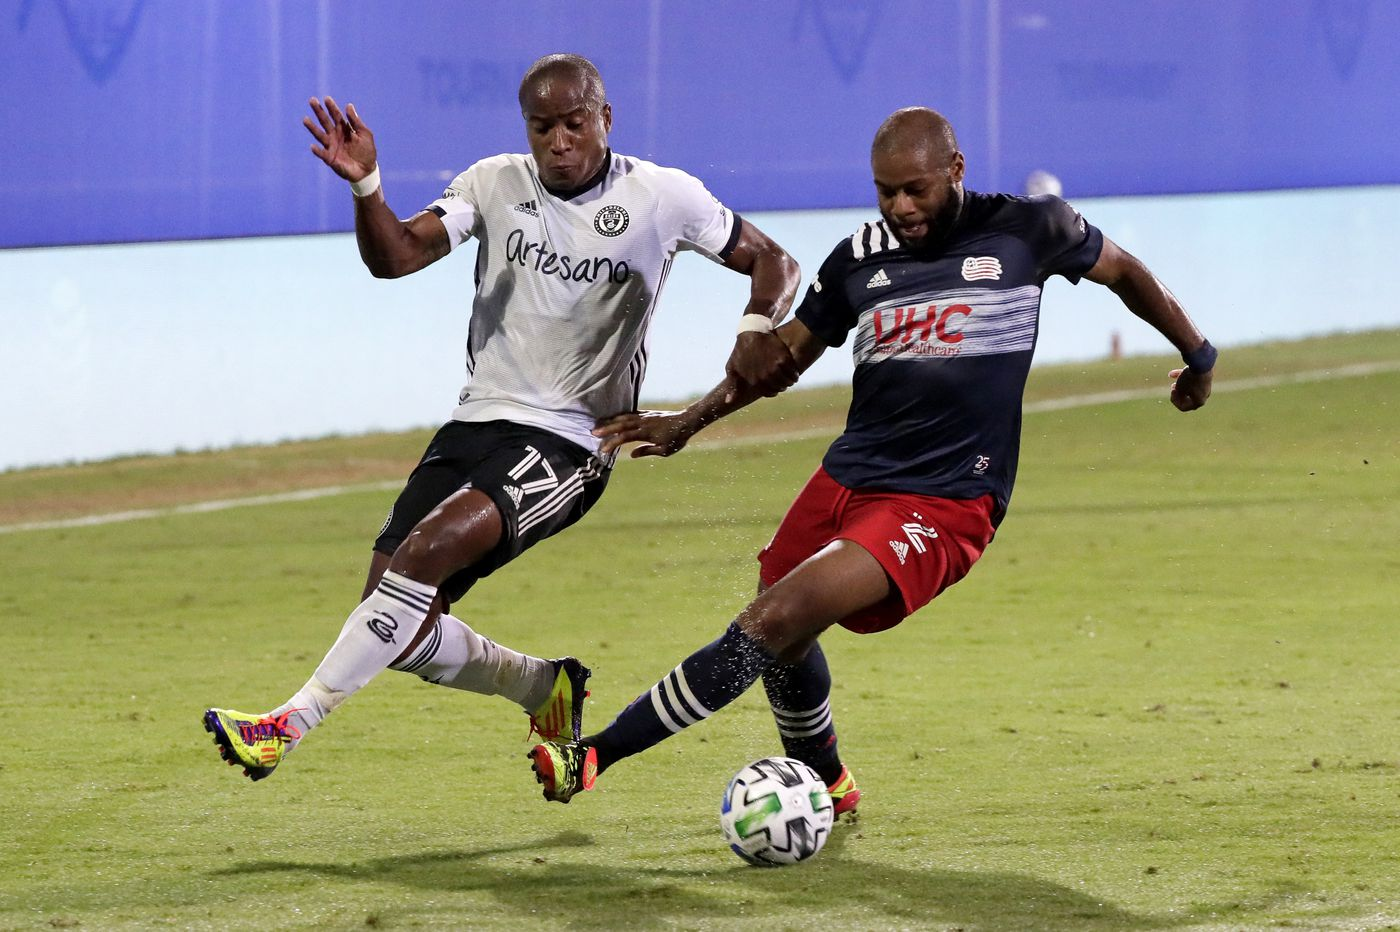 Union to resume playing games on Aug. 21 as first six games of new MLS schedule are announced